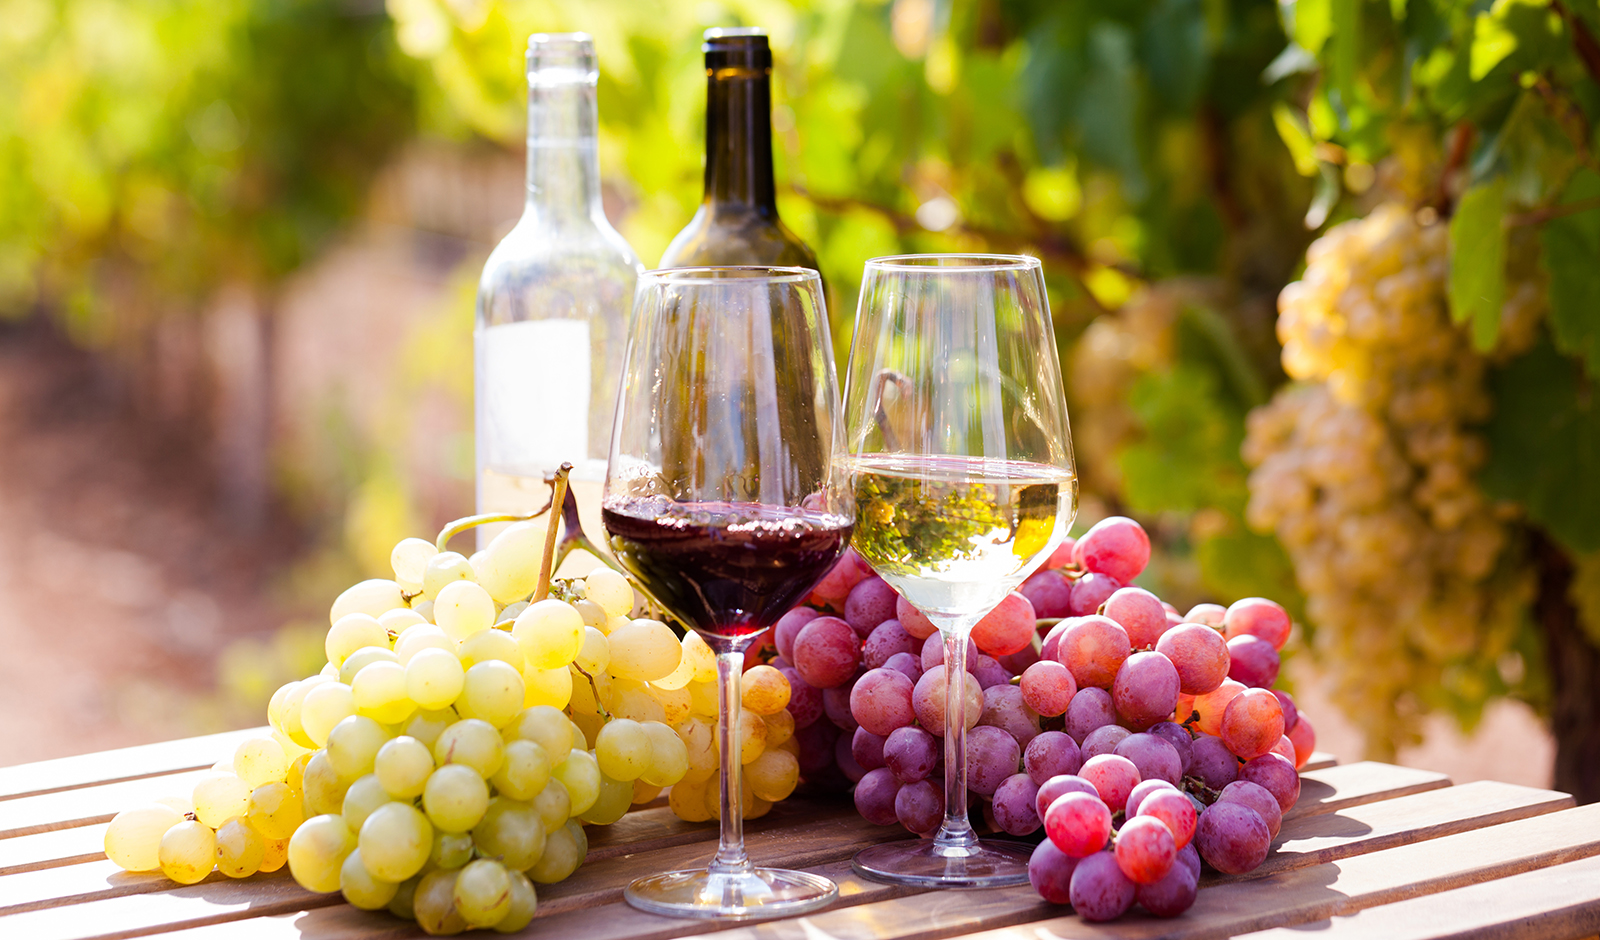 red-wine-vs-white-wine-what-is-the-difference-main-image-wine-and-grapes-outside